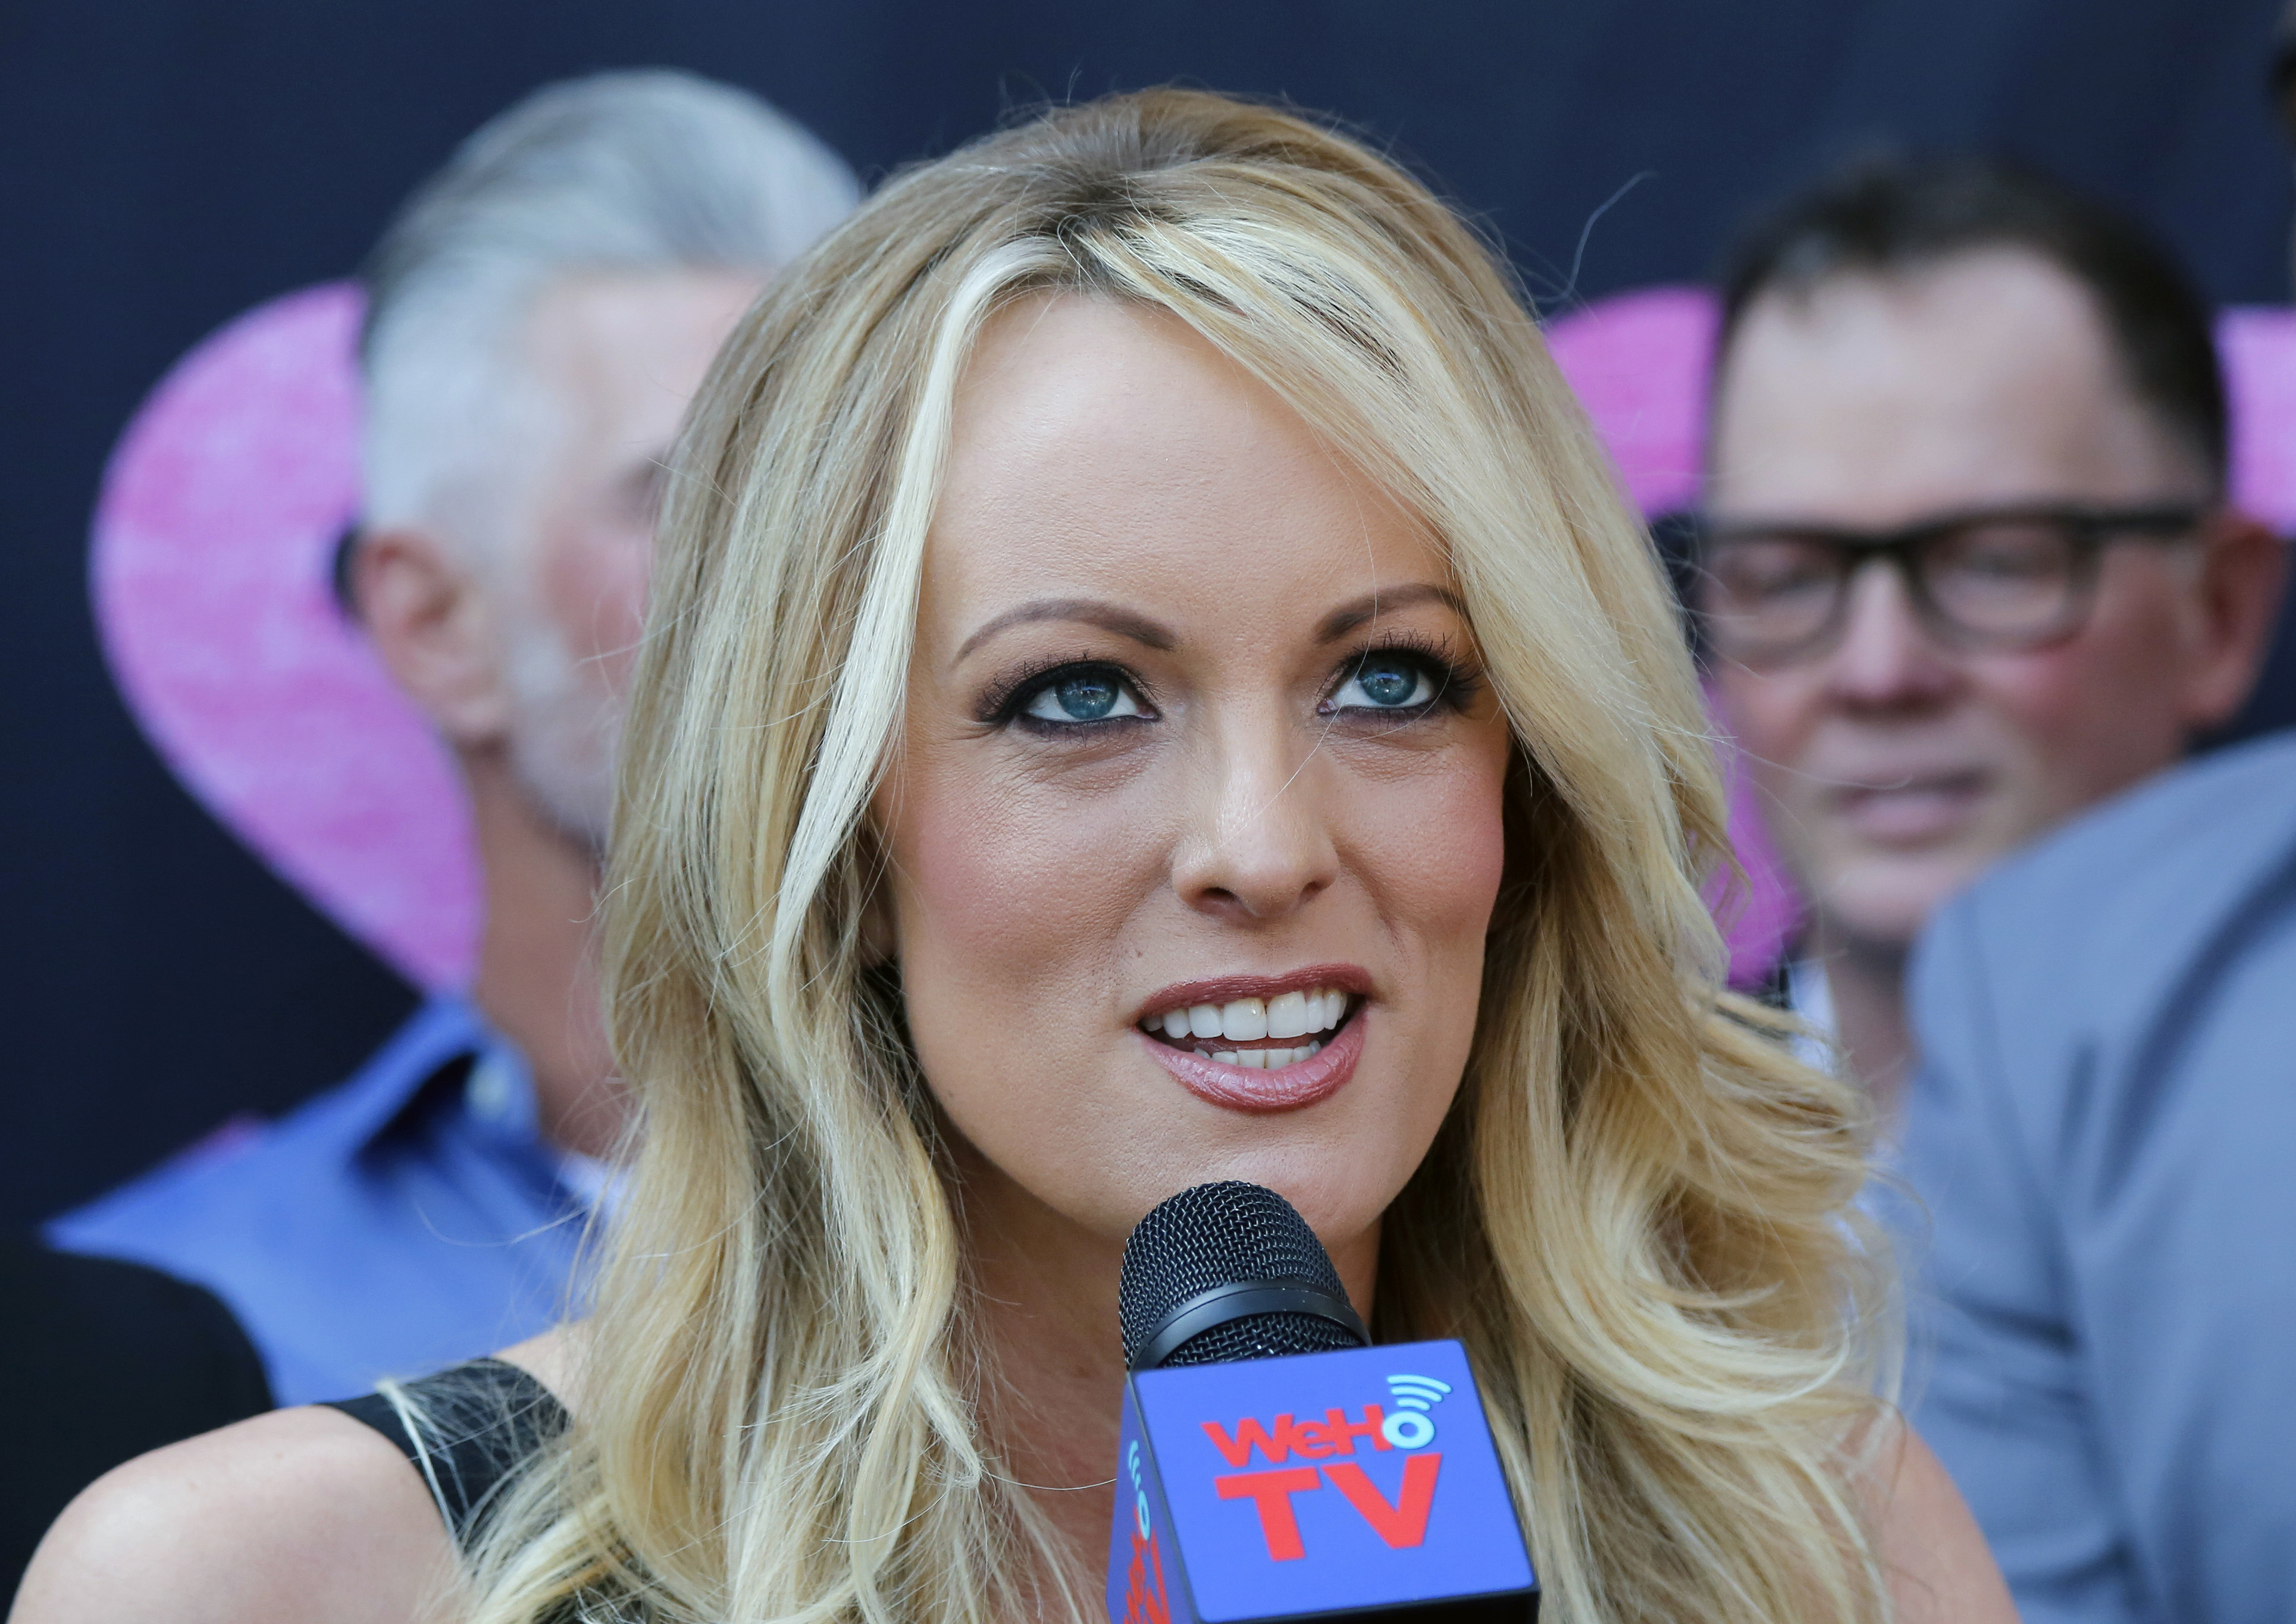 Trump says the payment to Stormy Daniels was a private matter unrelated to his campaign.